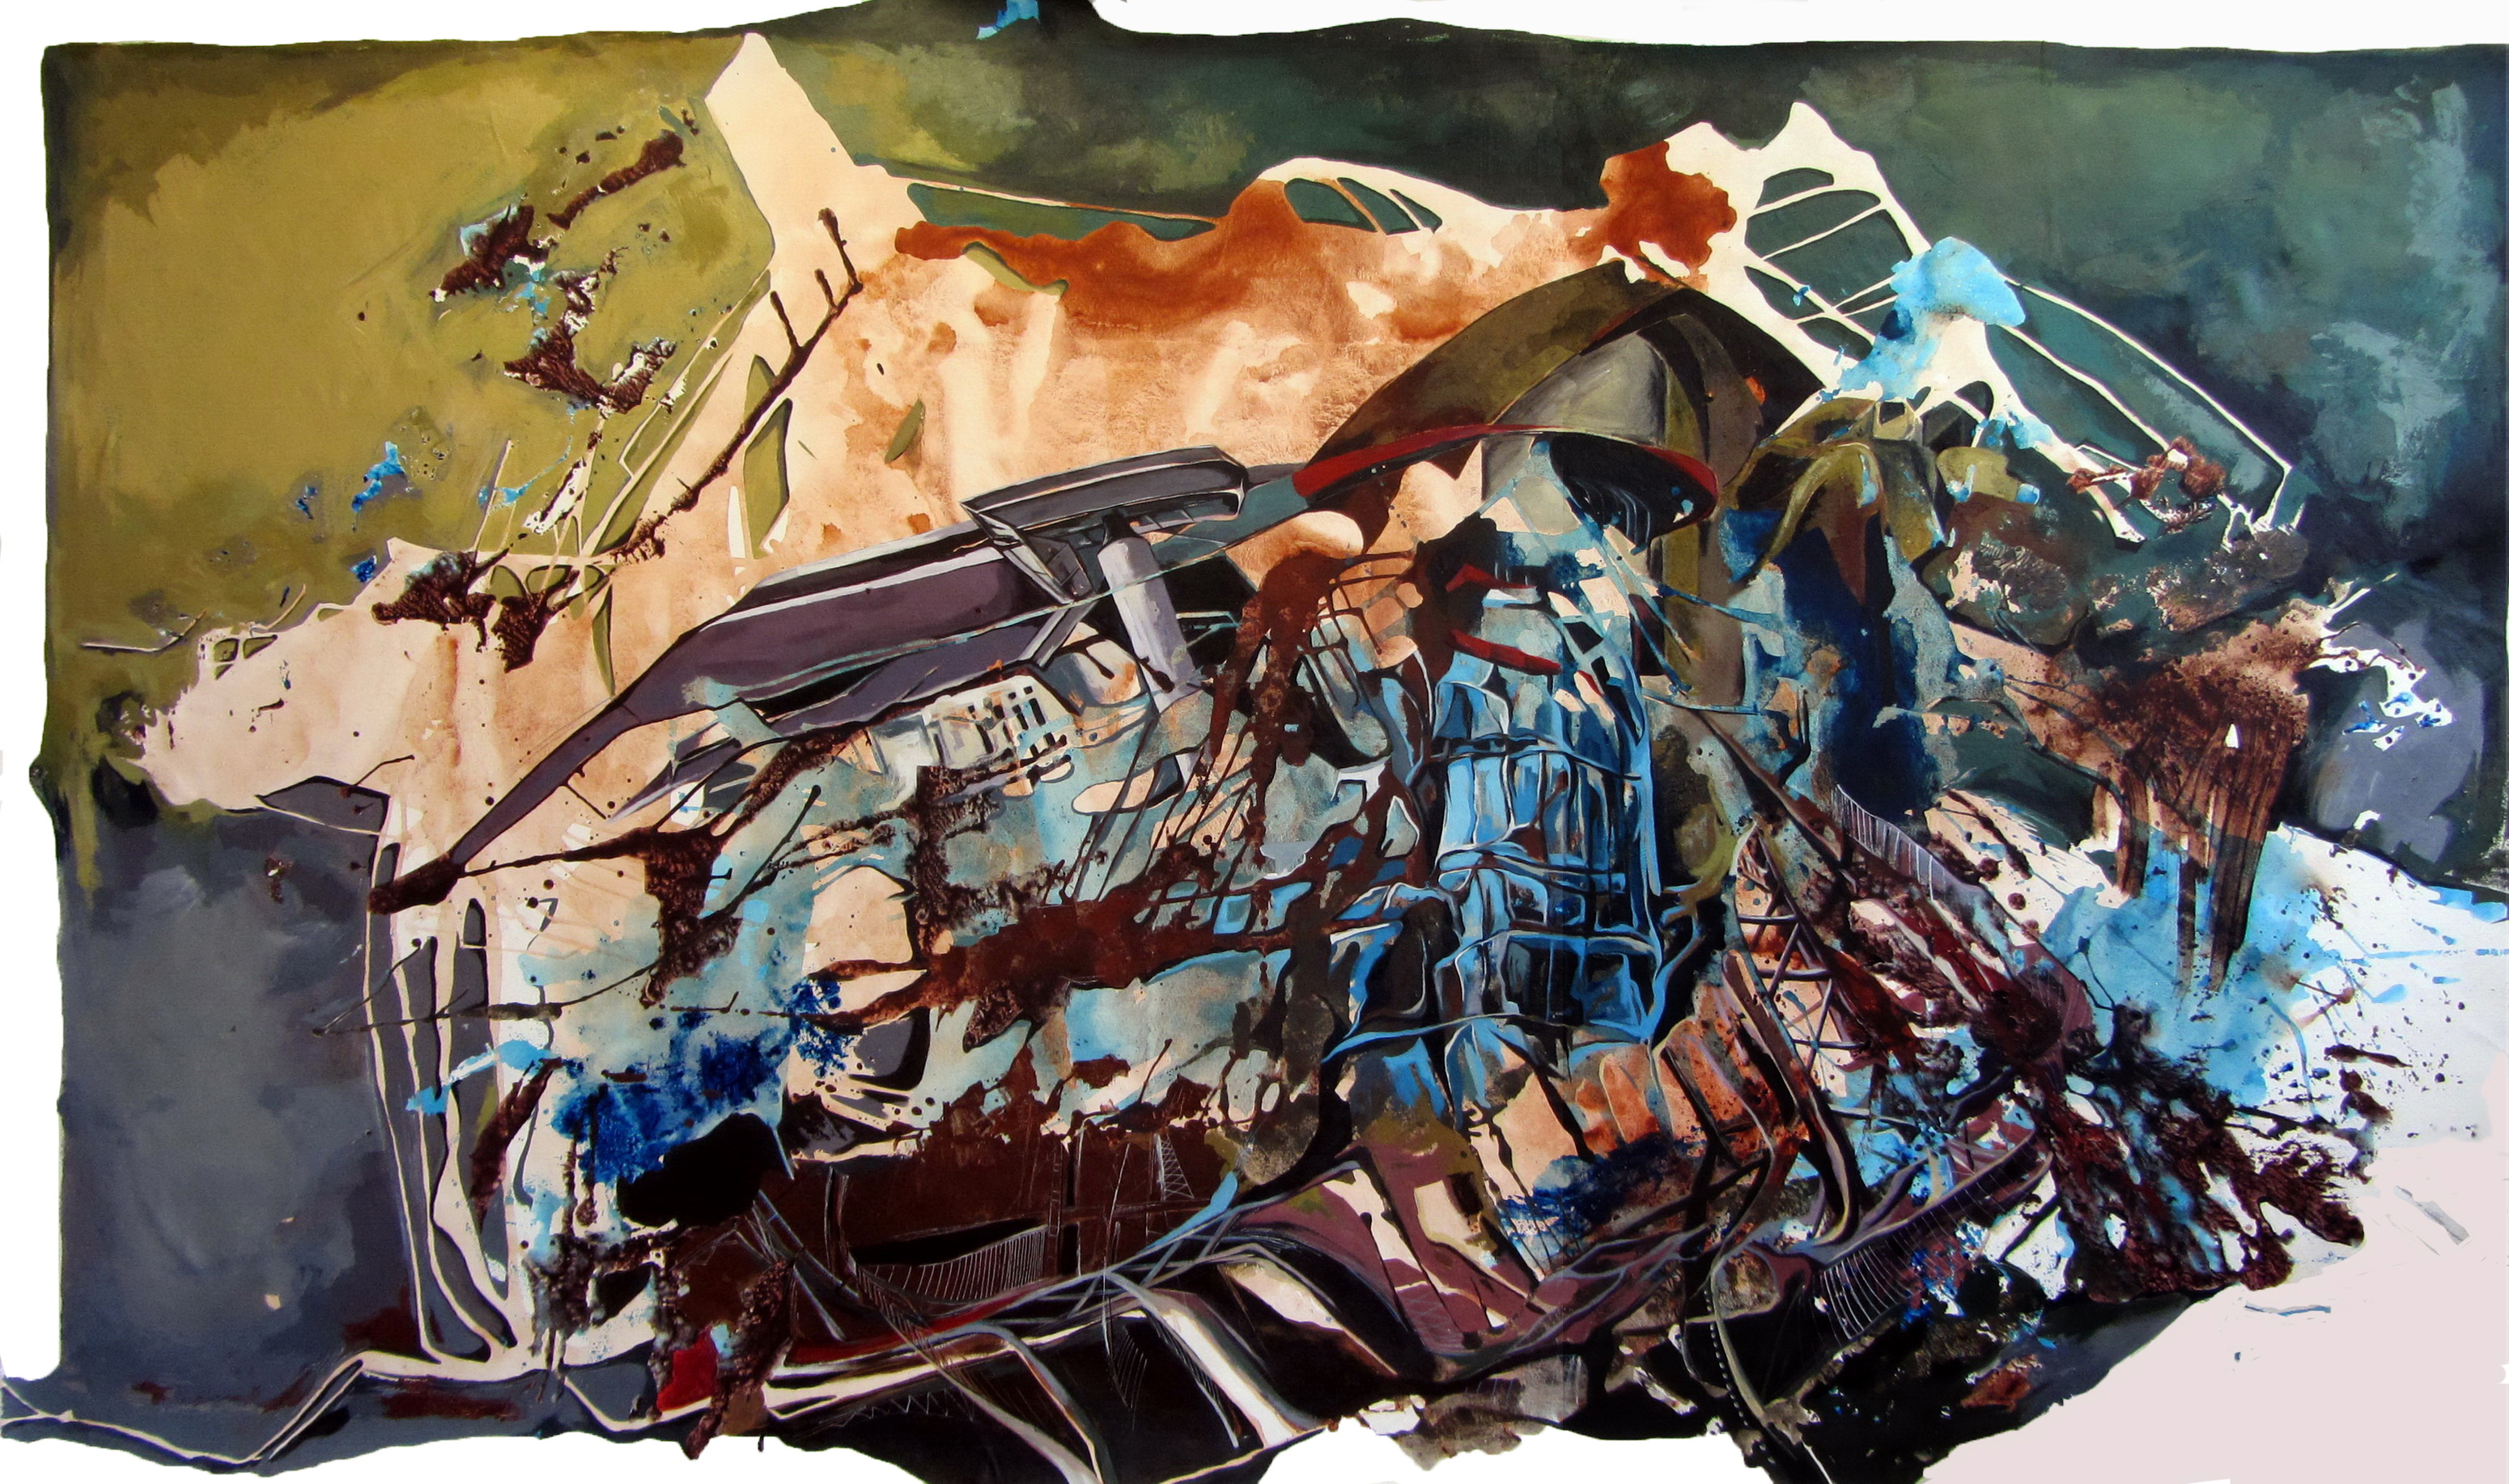 Cityscape Remix, acrylic on canvas 83x141 inches, 2012